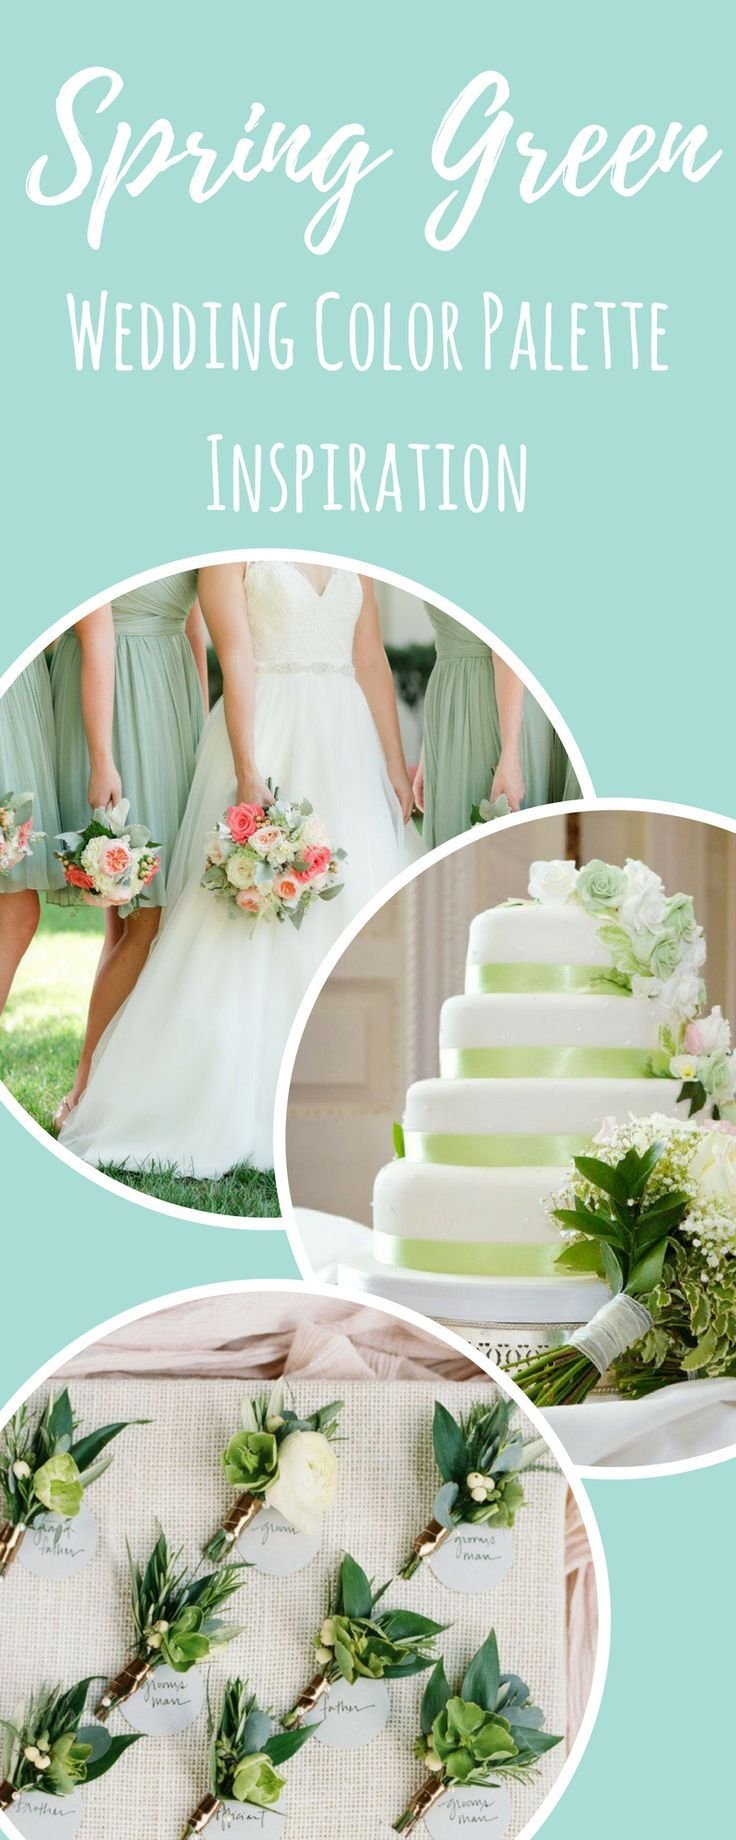 Wedding Color Palette Inspiration Spring Green  Nontraditional